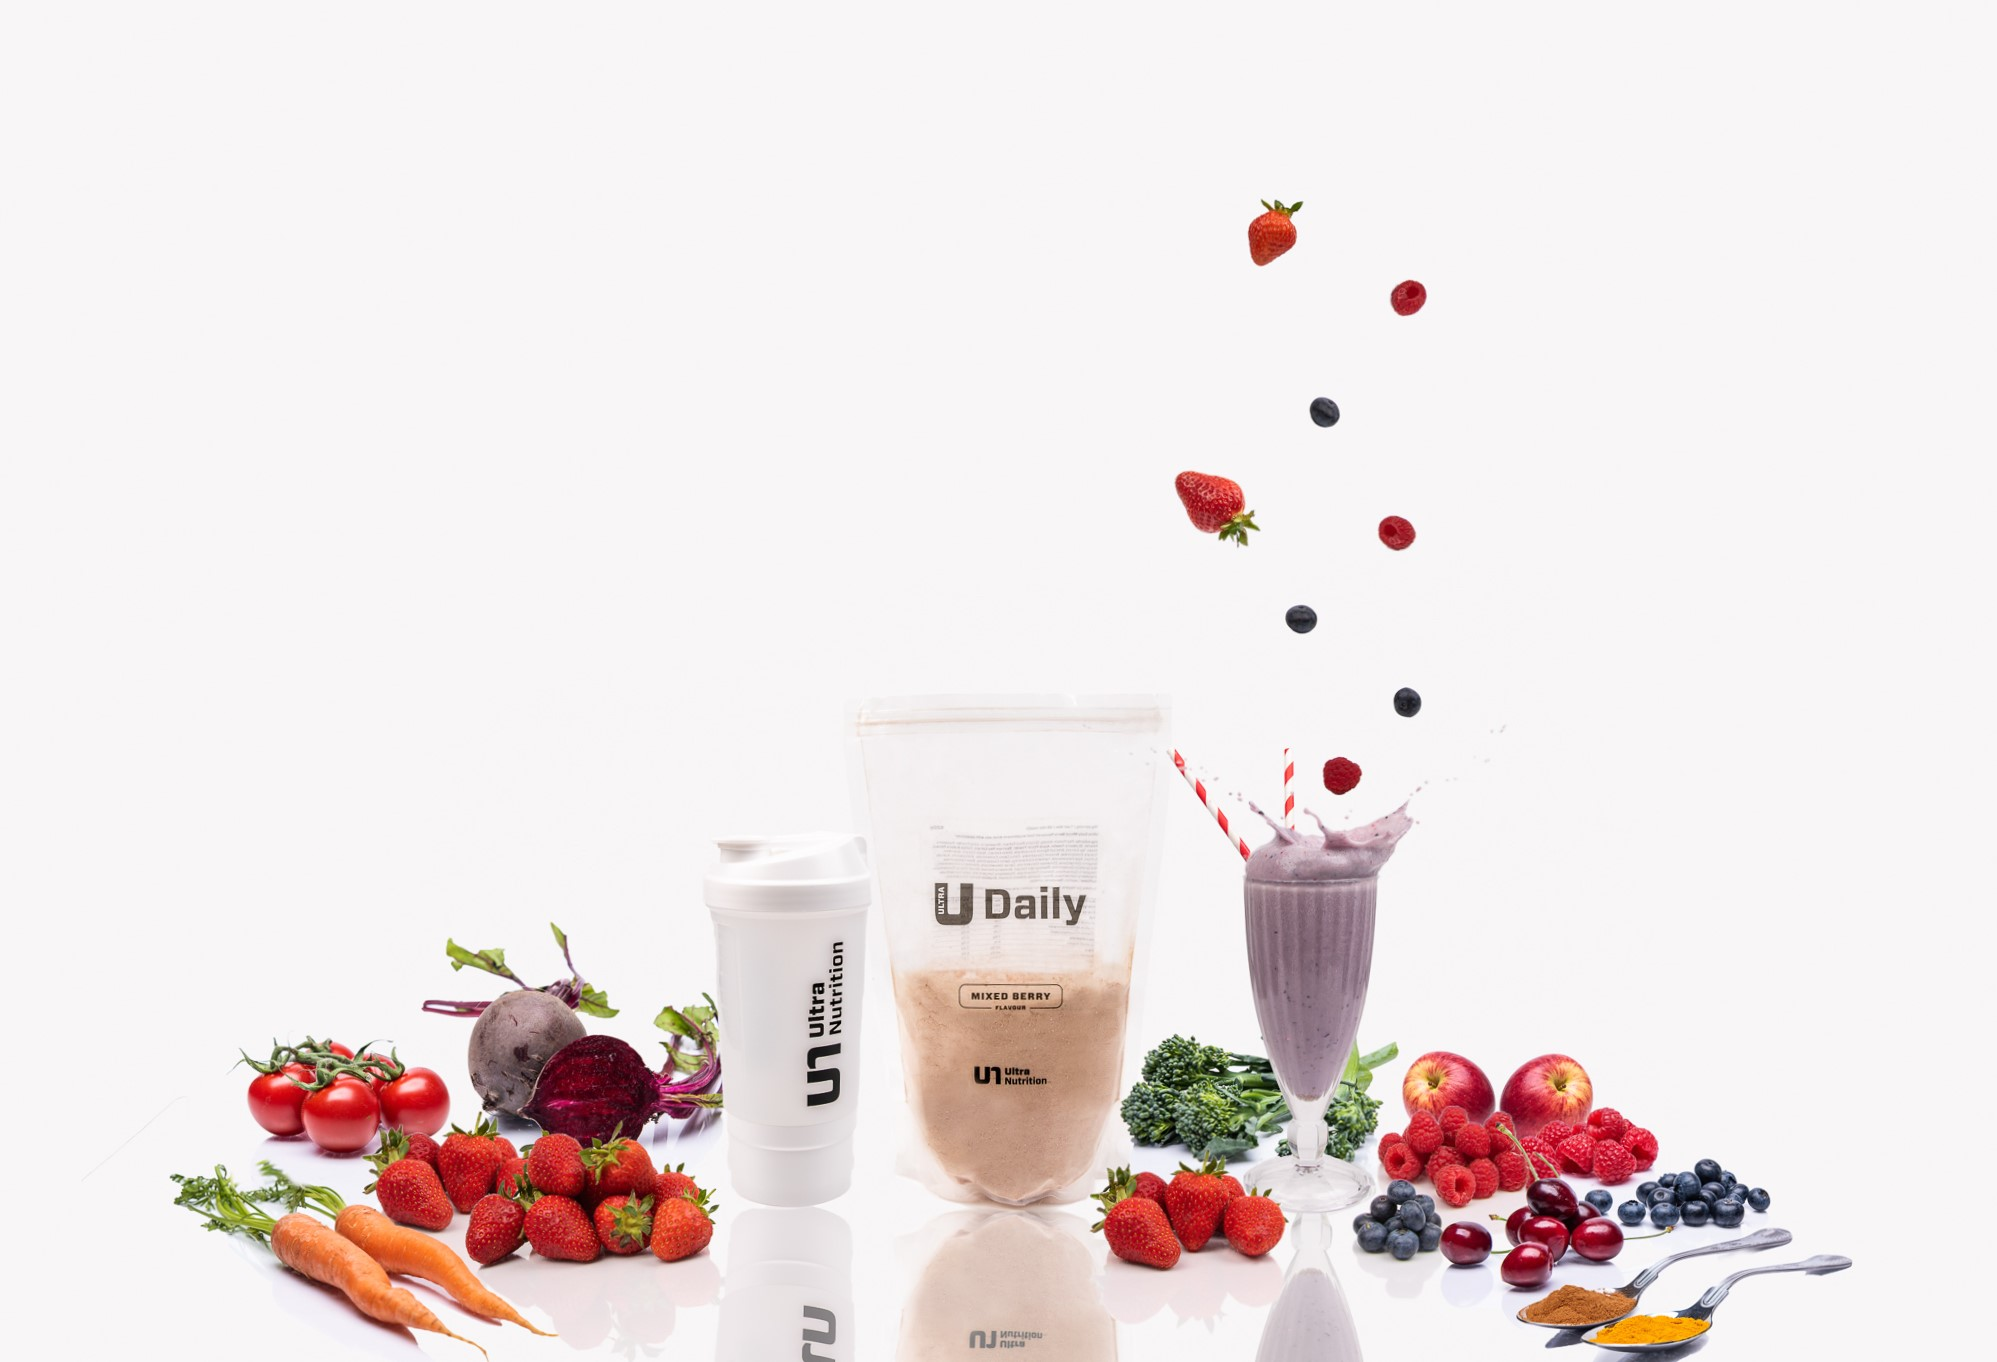 Ultra Daily mixed Berry with white shake